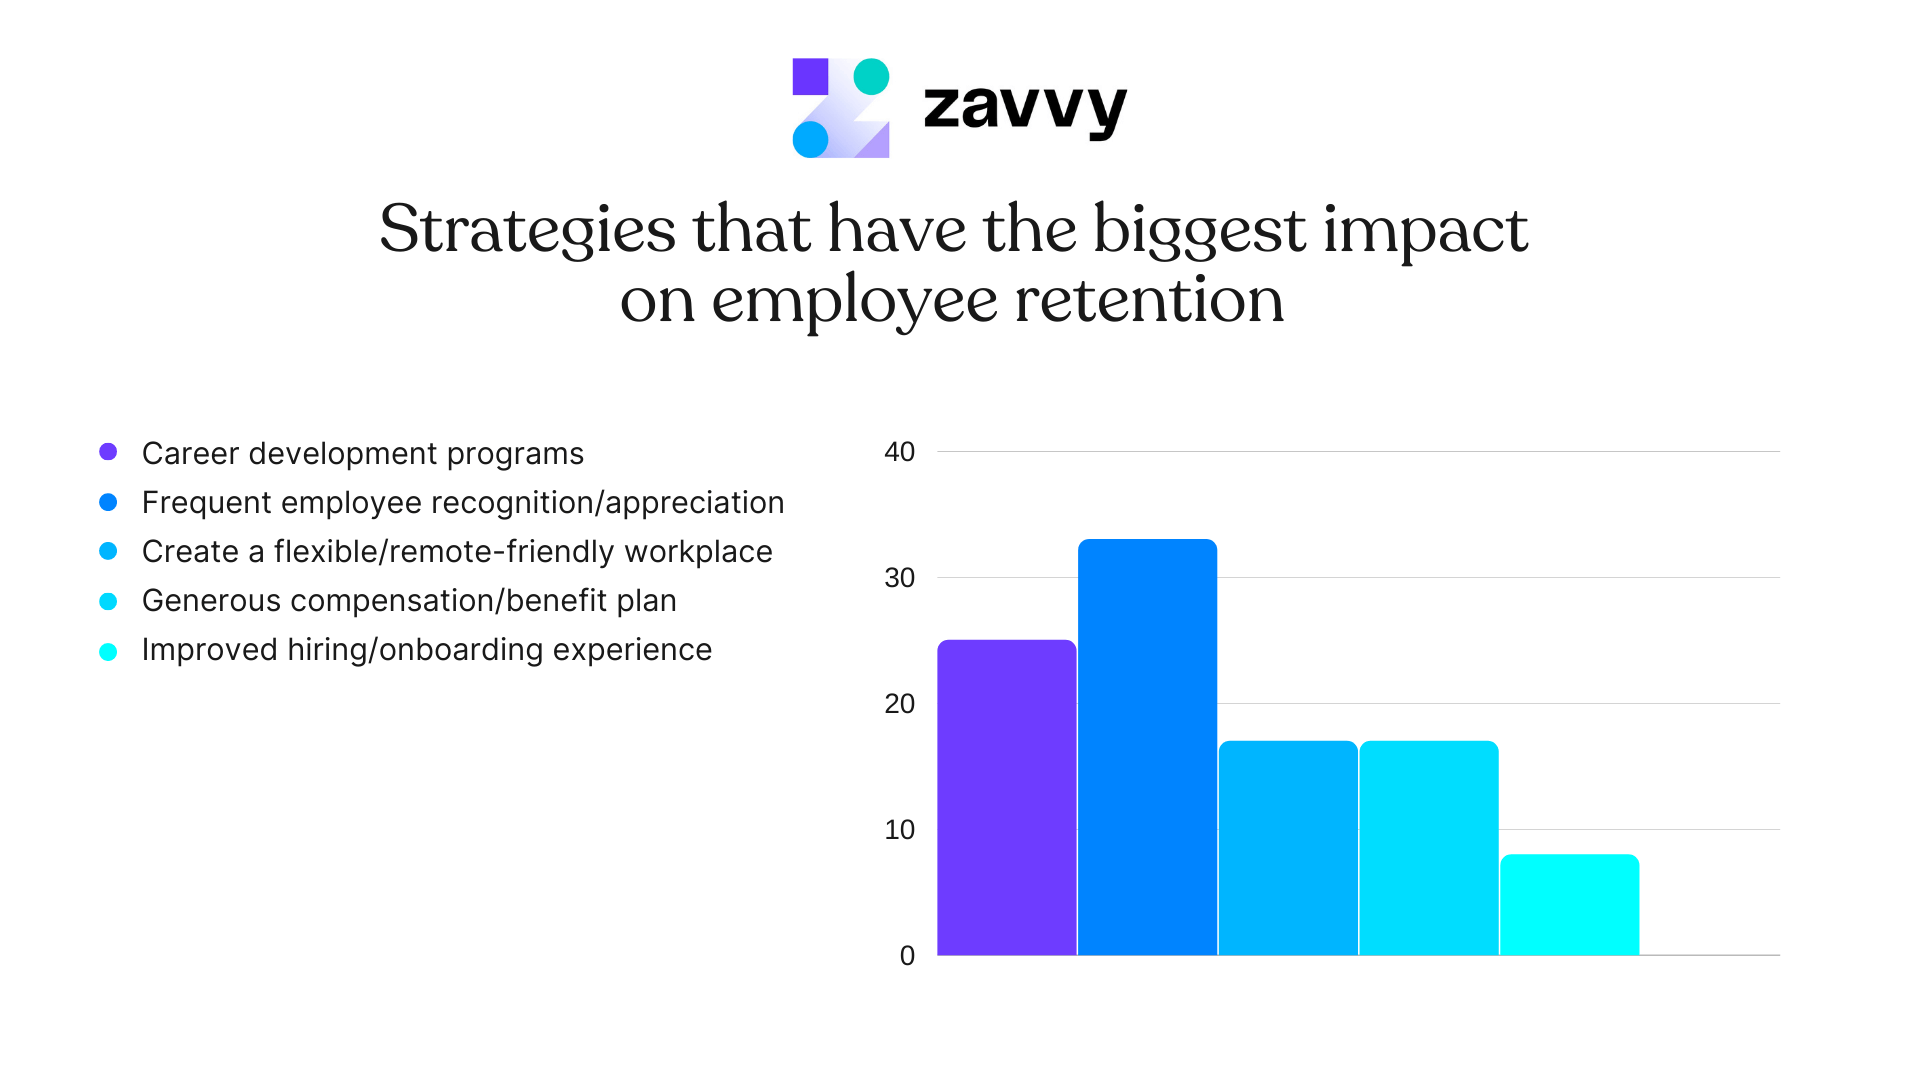 Overview of the strategies with the biggest impact on employee retention. Number 1: Frequent recognition